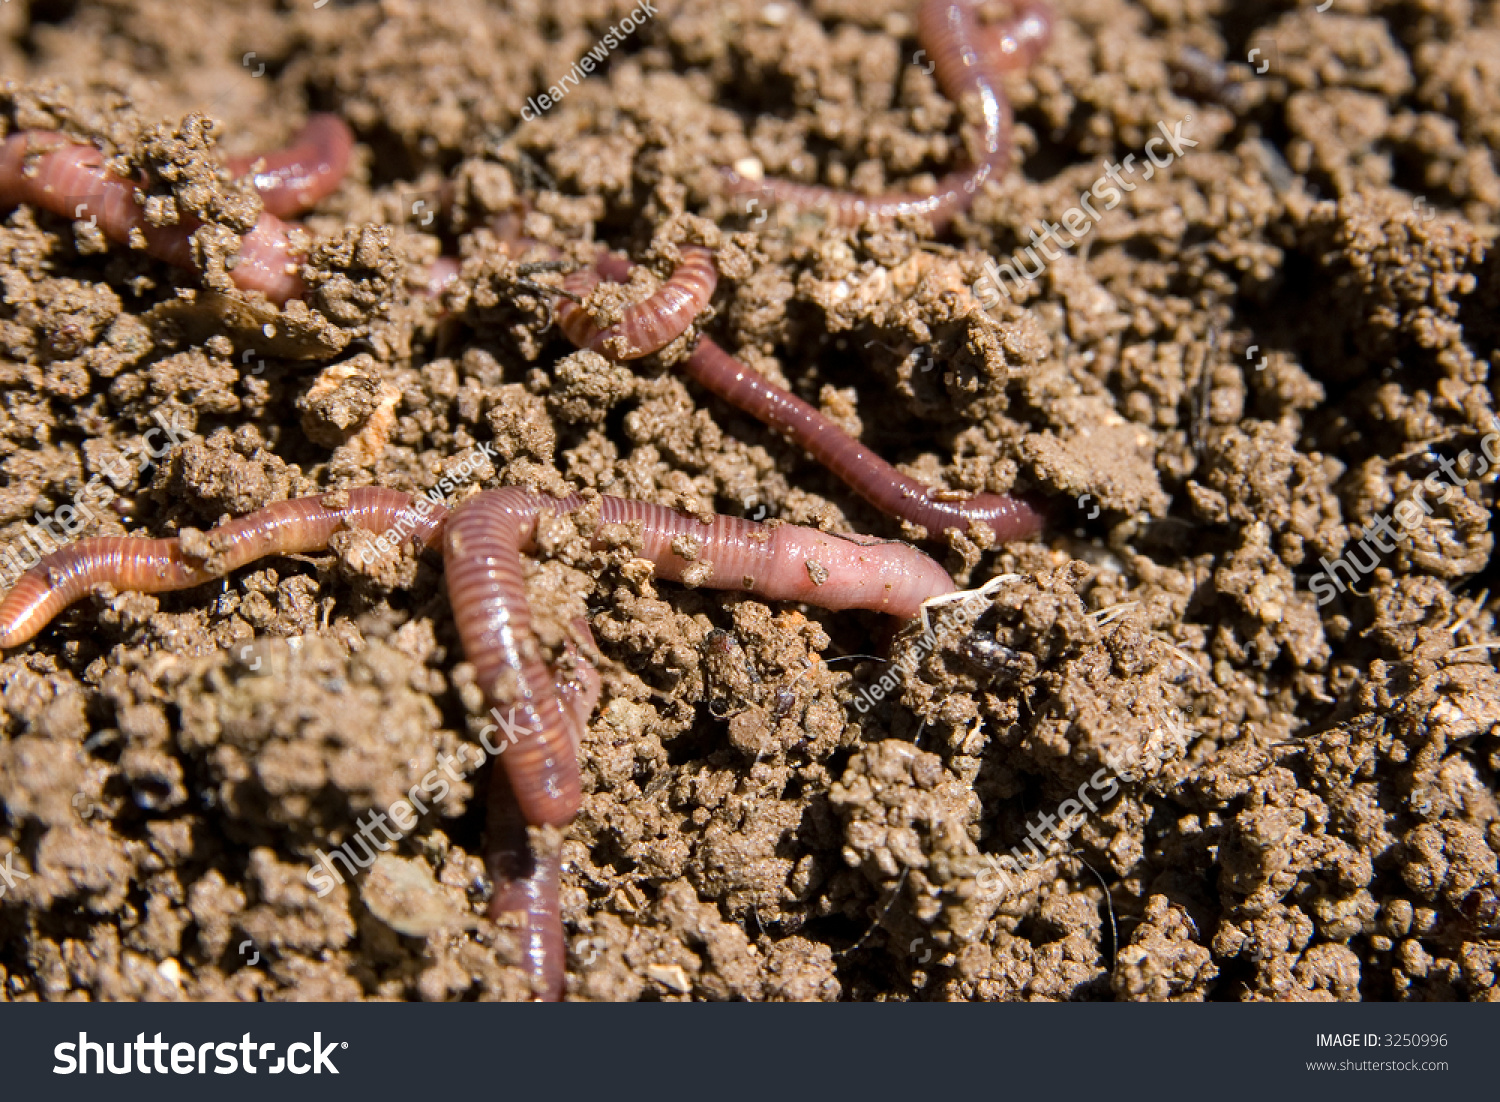 Composting Worms Burrowing Through The Dirt In The Garden Stock Photo 3250996 : Shutterstock